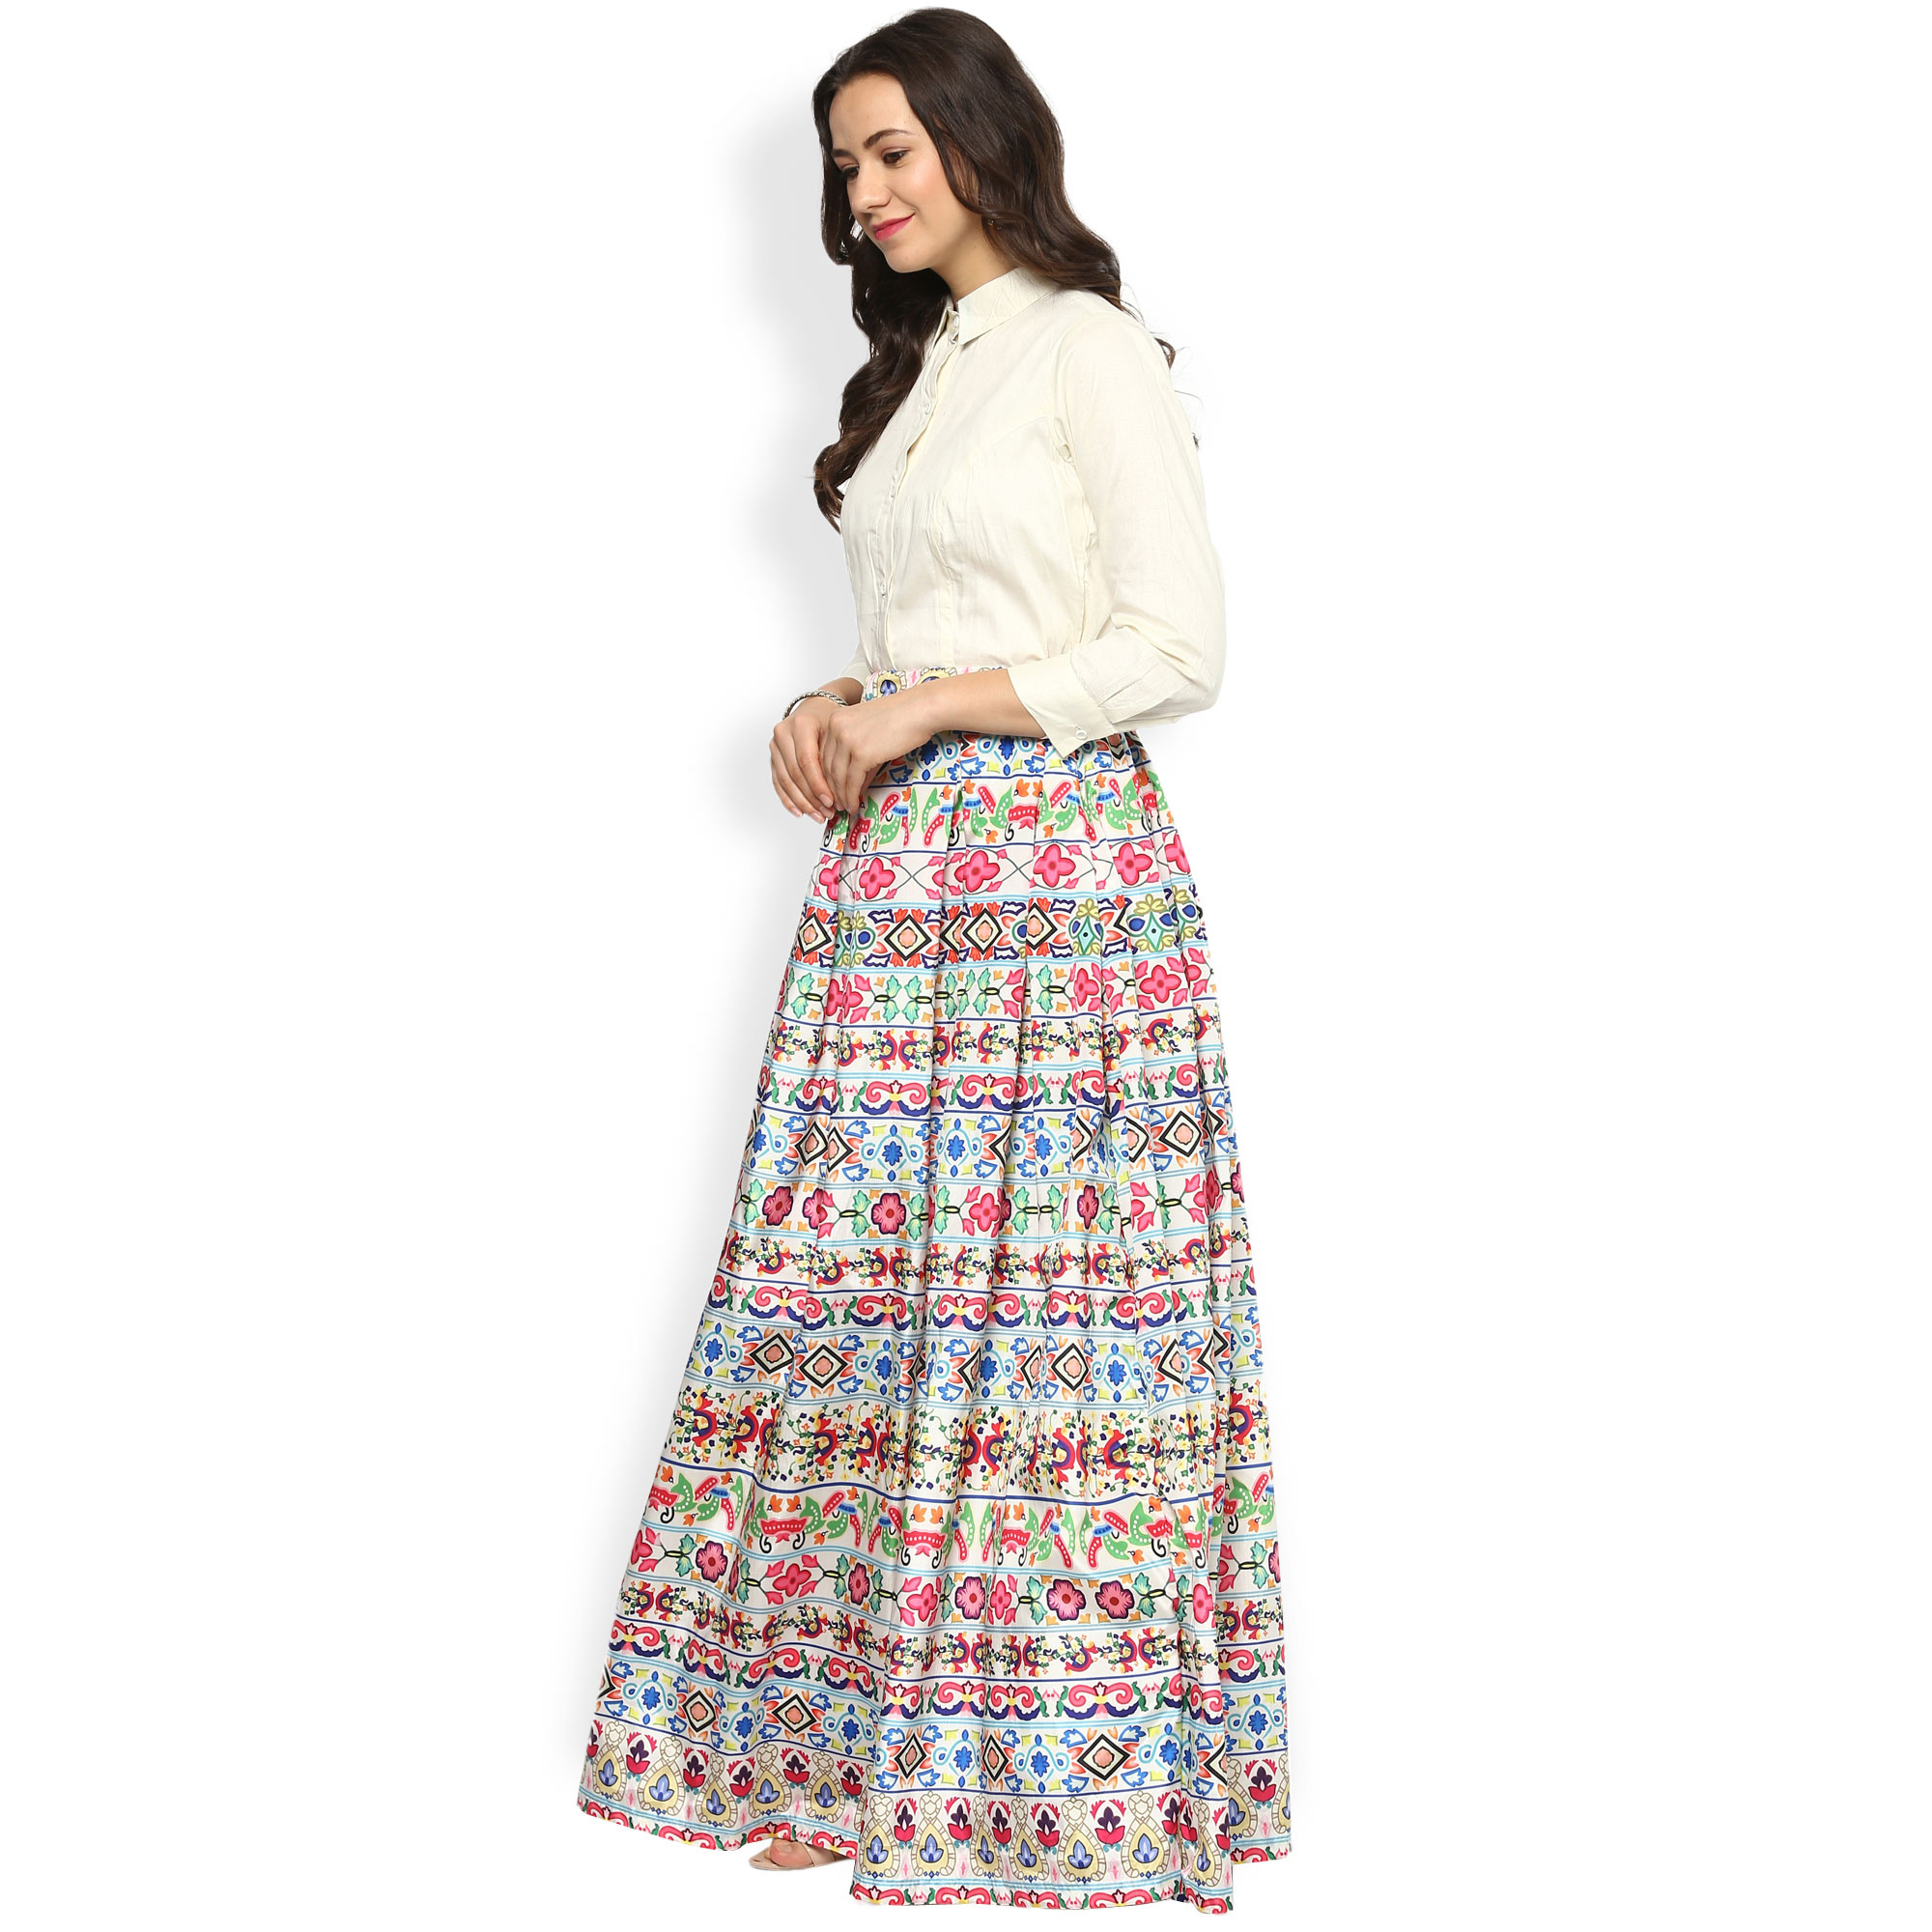 5242cd2430 Buy White Shirt with Multicolored Lehenga online India, Best Prices ...